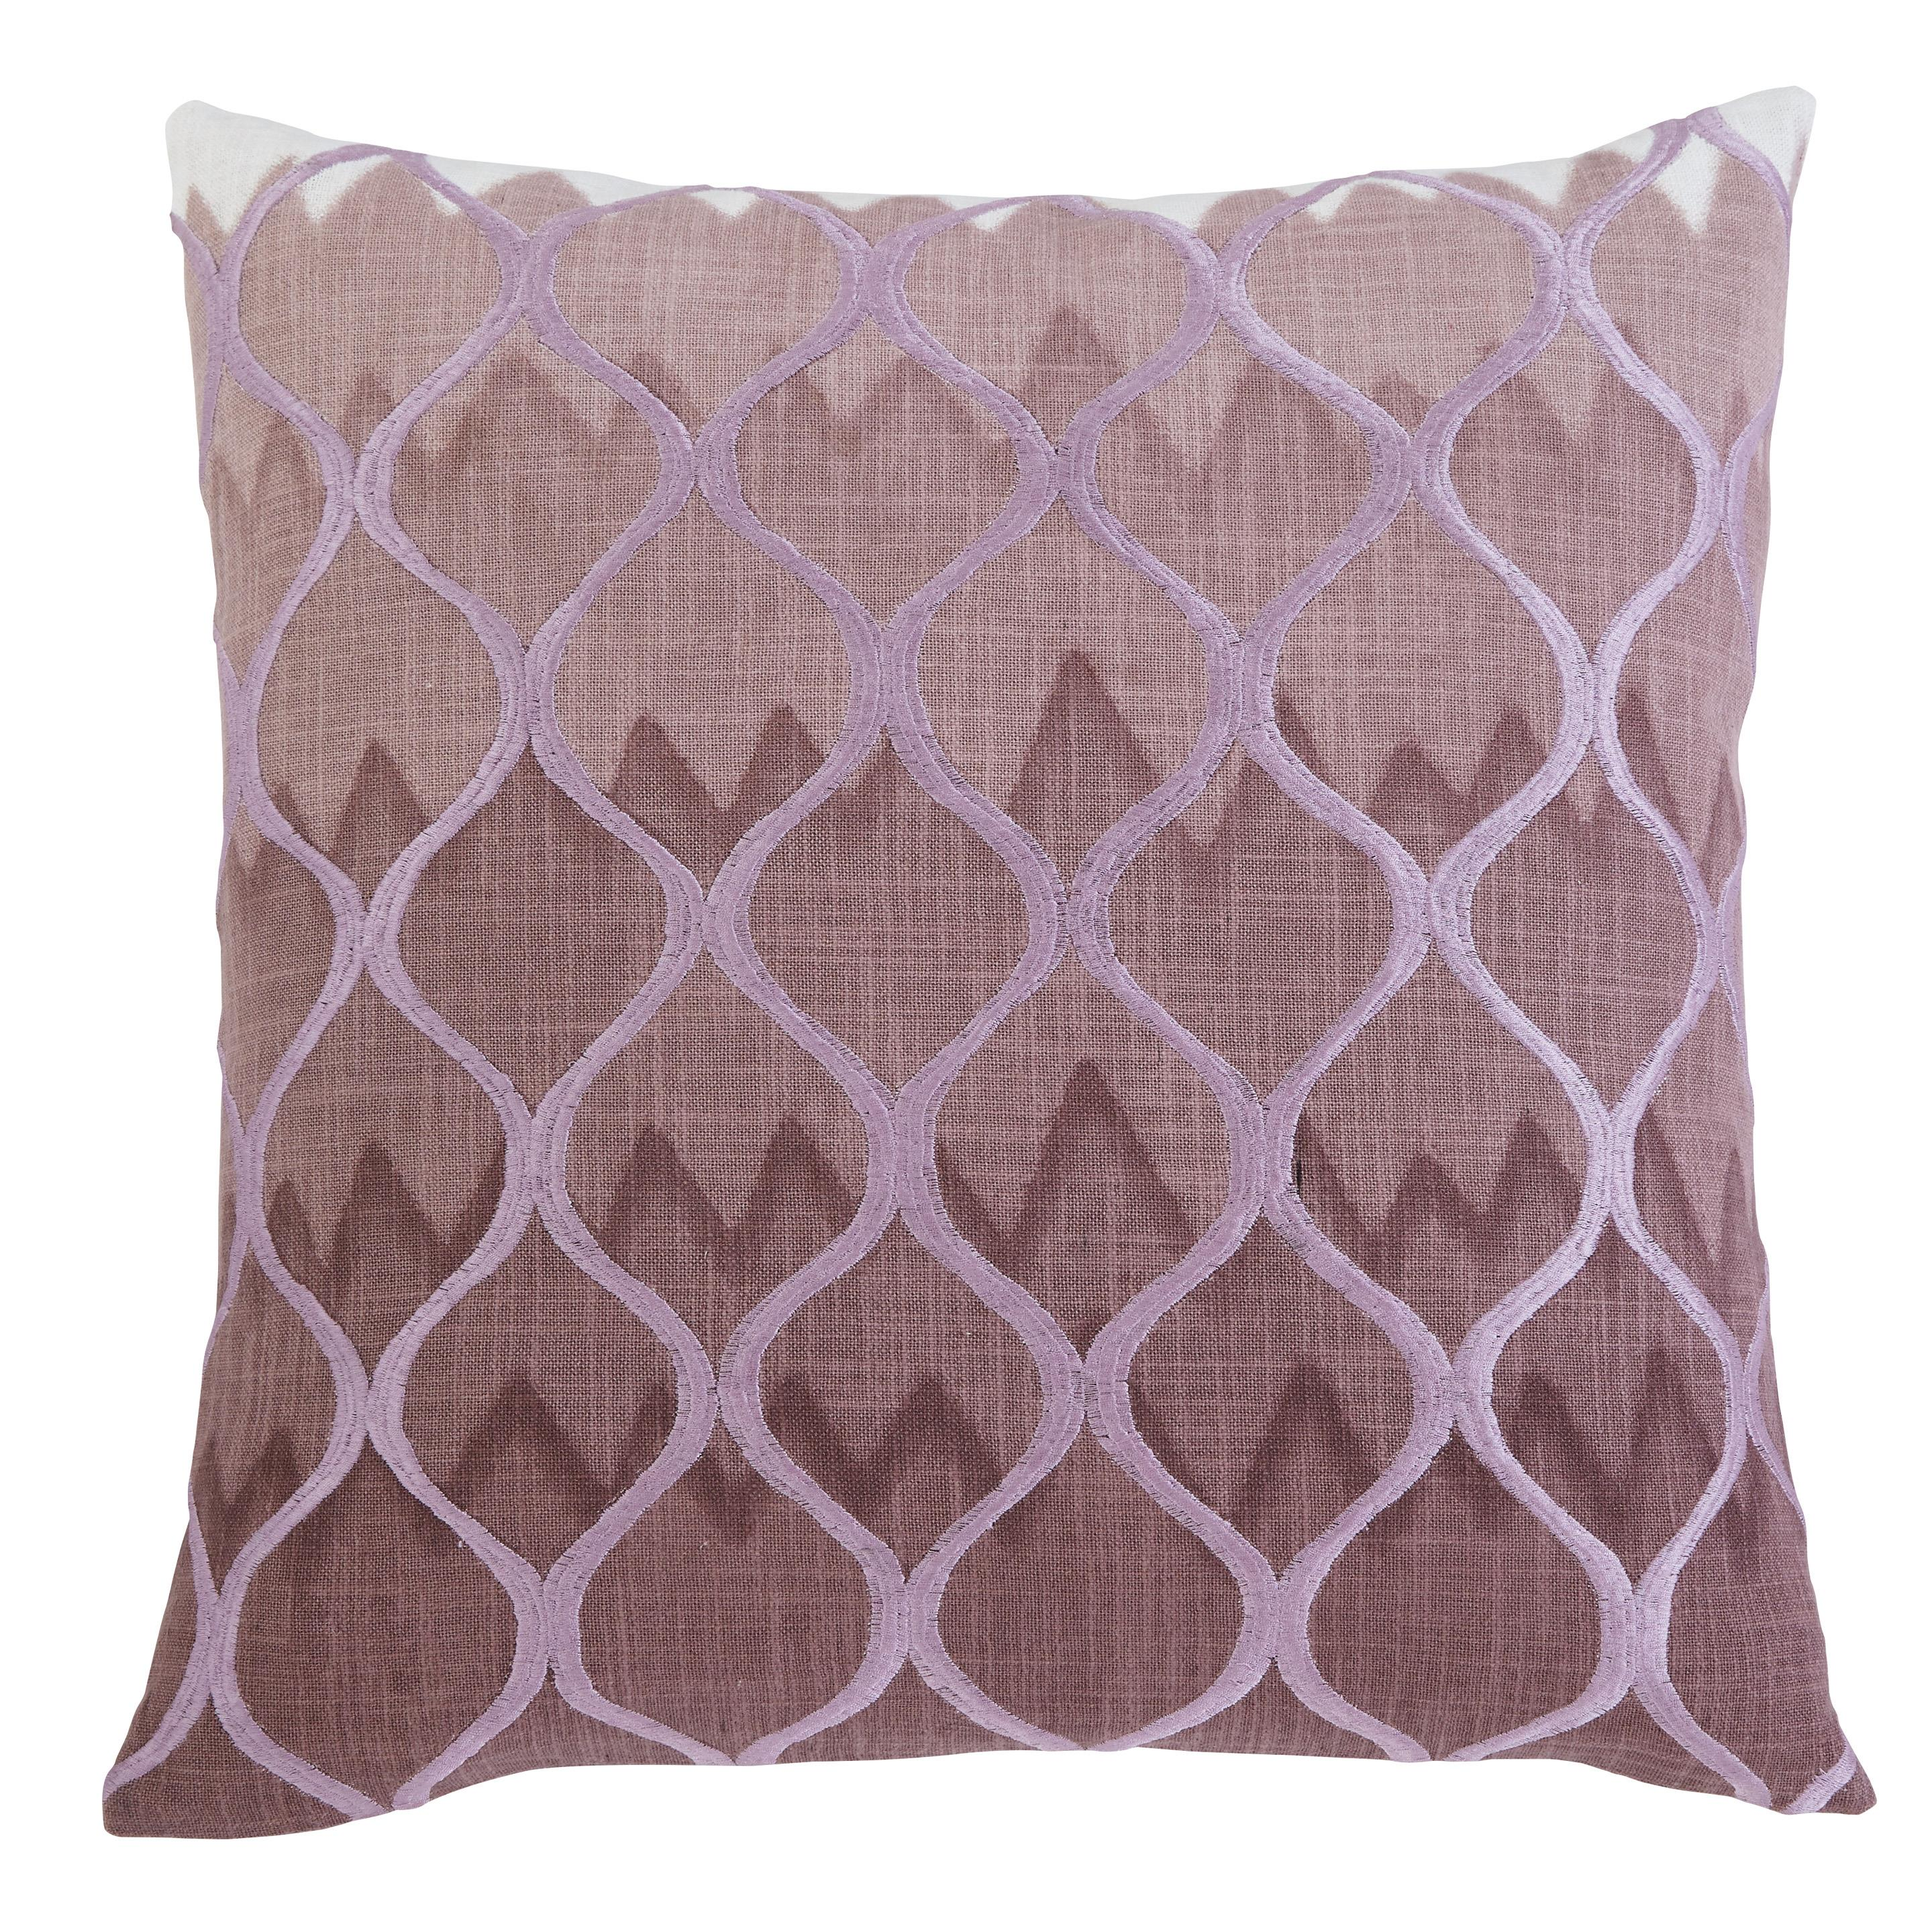 Signature Design by Ashley Pillows Stitched - Purple Pillow Cover - Item Number: A1000271P